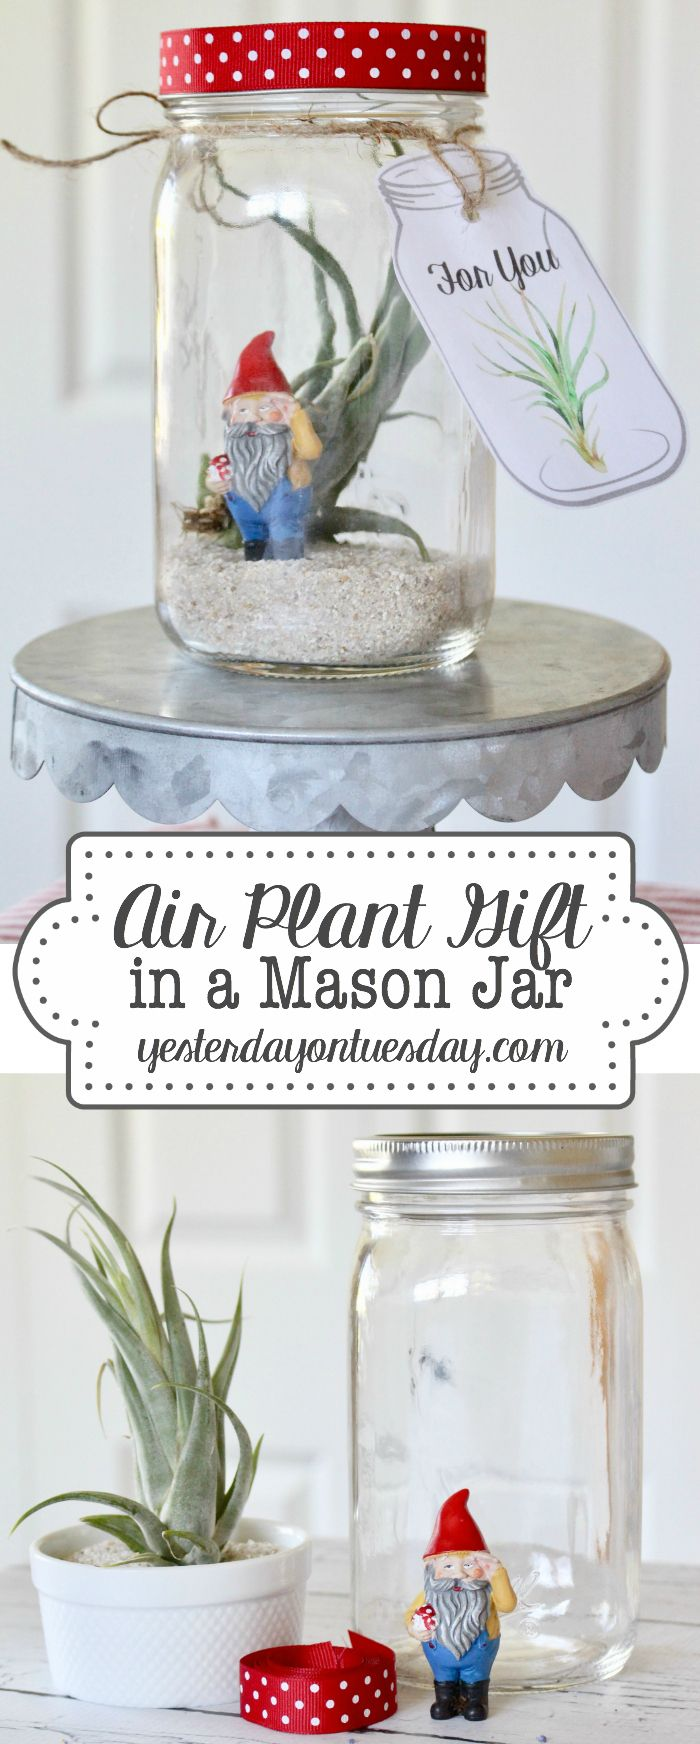 Air Plant Gift in a Mason Jar with printable tags for for any occasion including...